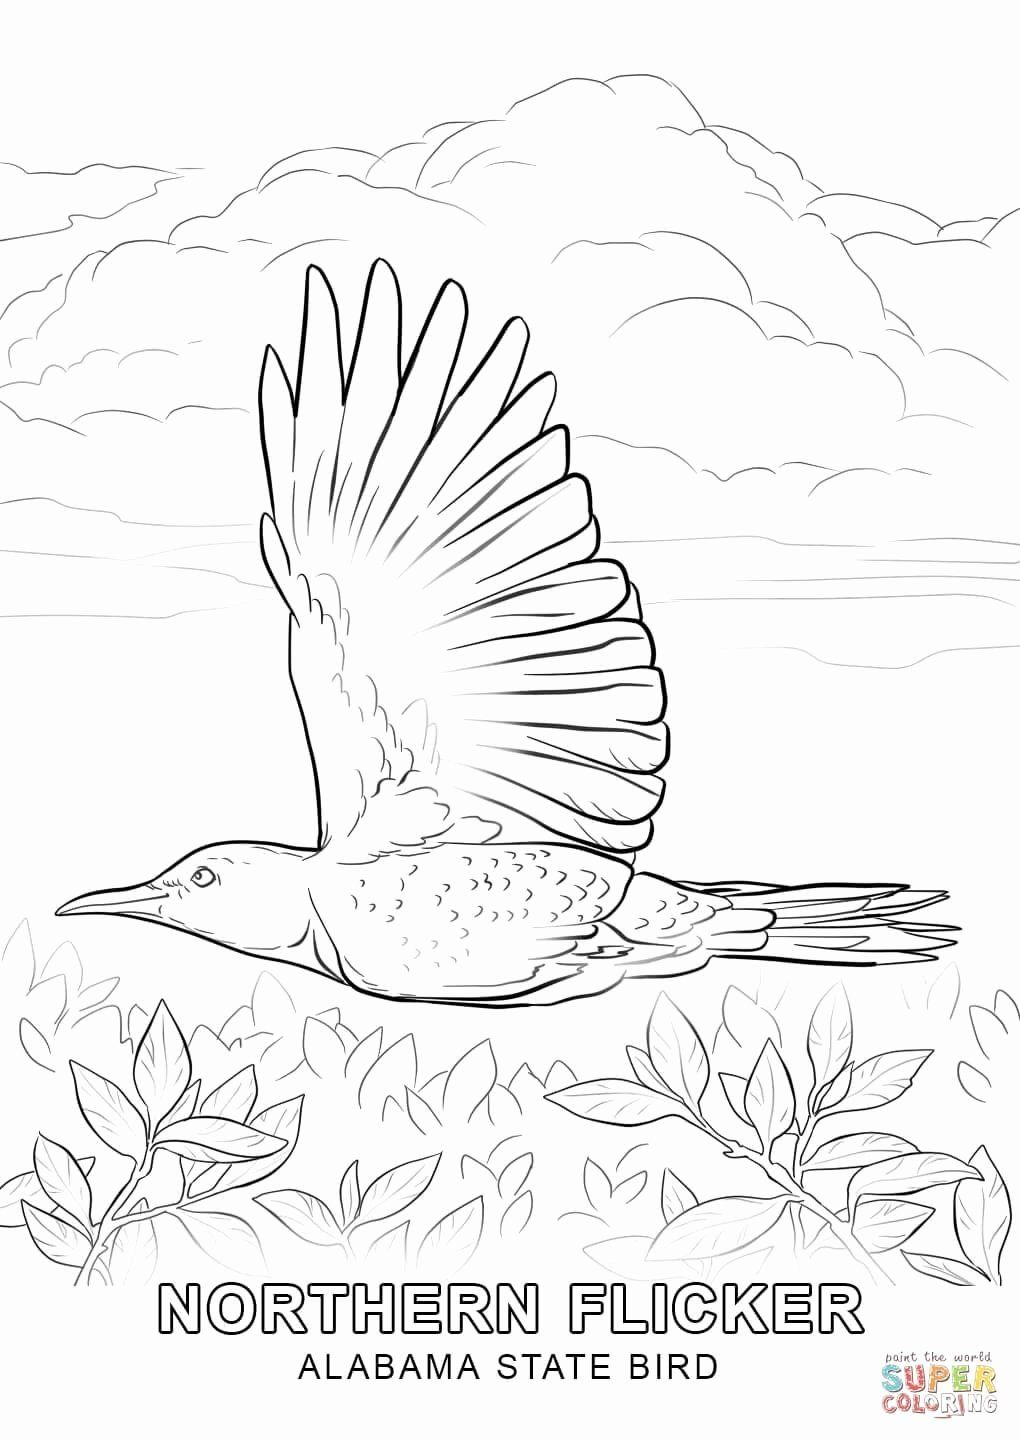 Cardinals Football Coloring Pages Luxury Best State Bird Louisiana Coloring Page Kursknews Bird Coloring Pages Flag Coloring Pages Football Coloring Pages